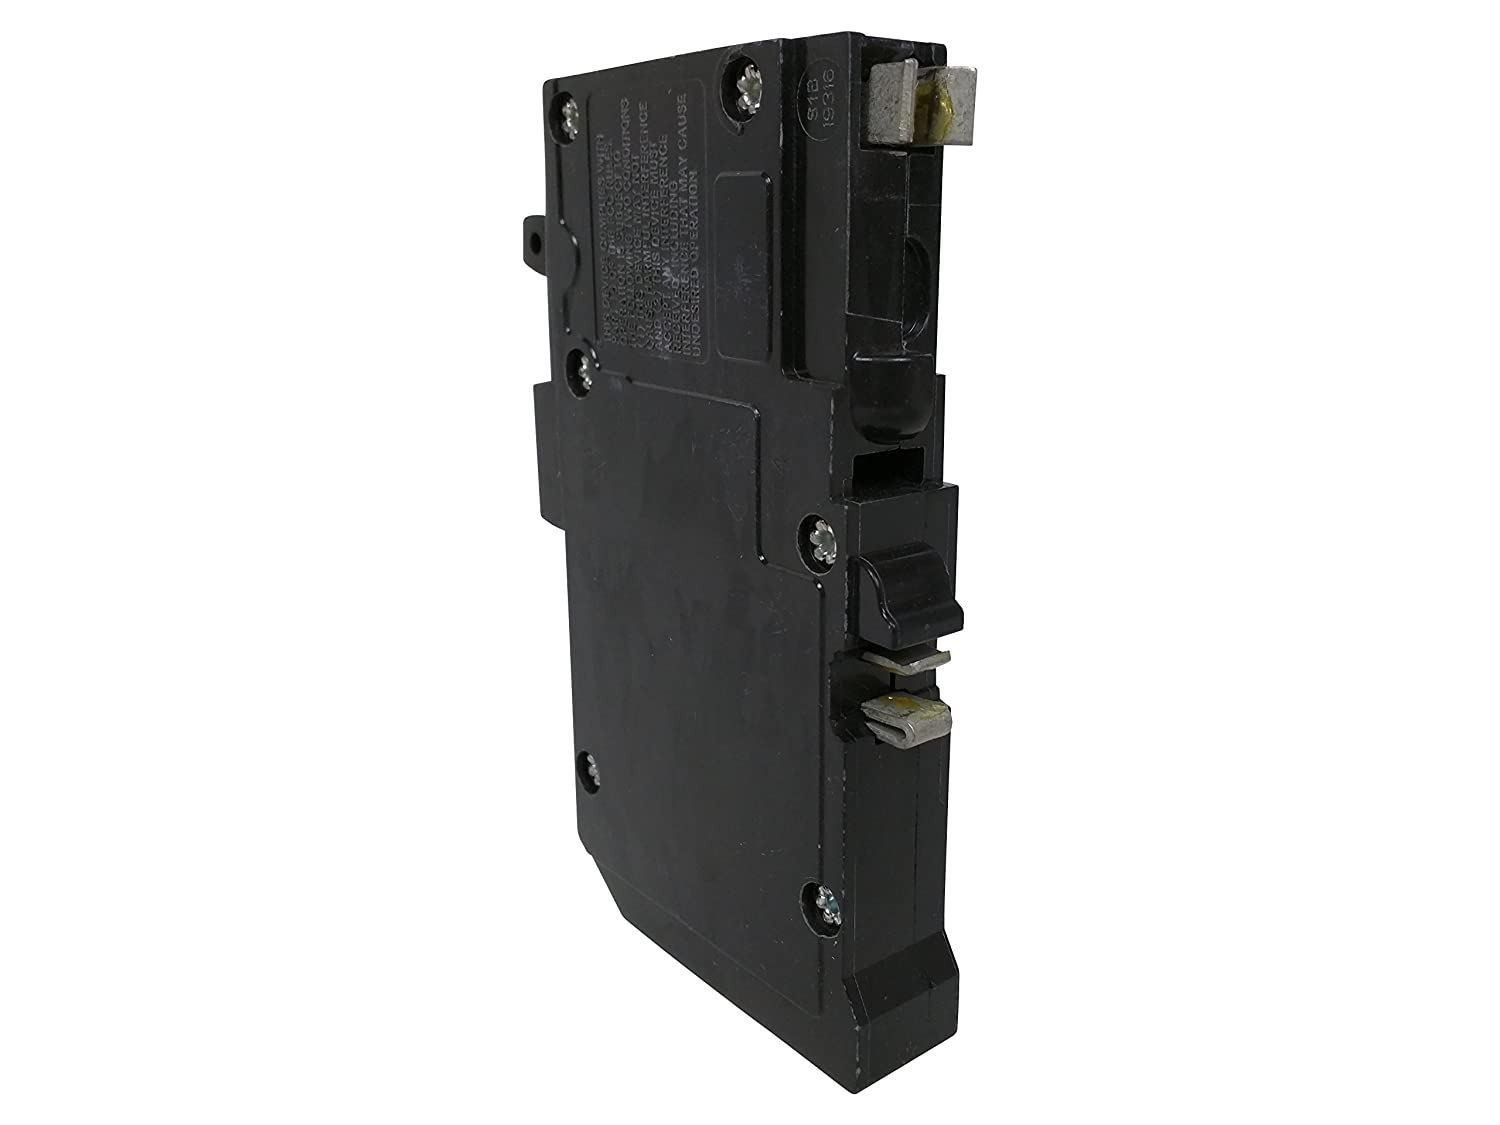 Square D by Schneider Electric QO Plug-On Neutral 20 Amp Single-Pole Dual Function (CAFCI and GFCI) Circuit Breaker QO120PDFC